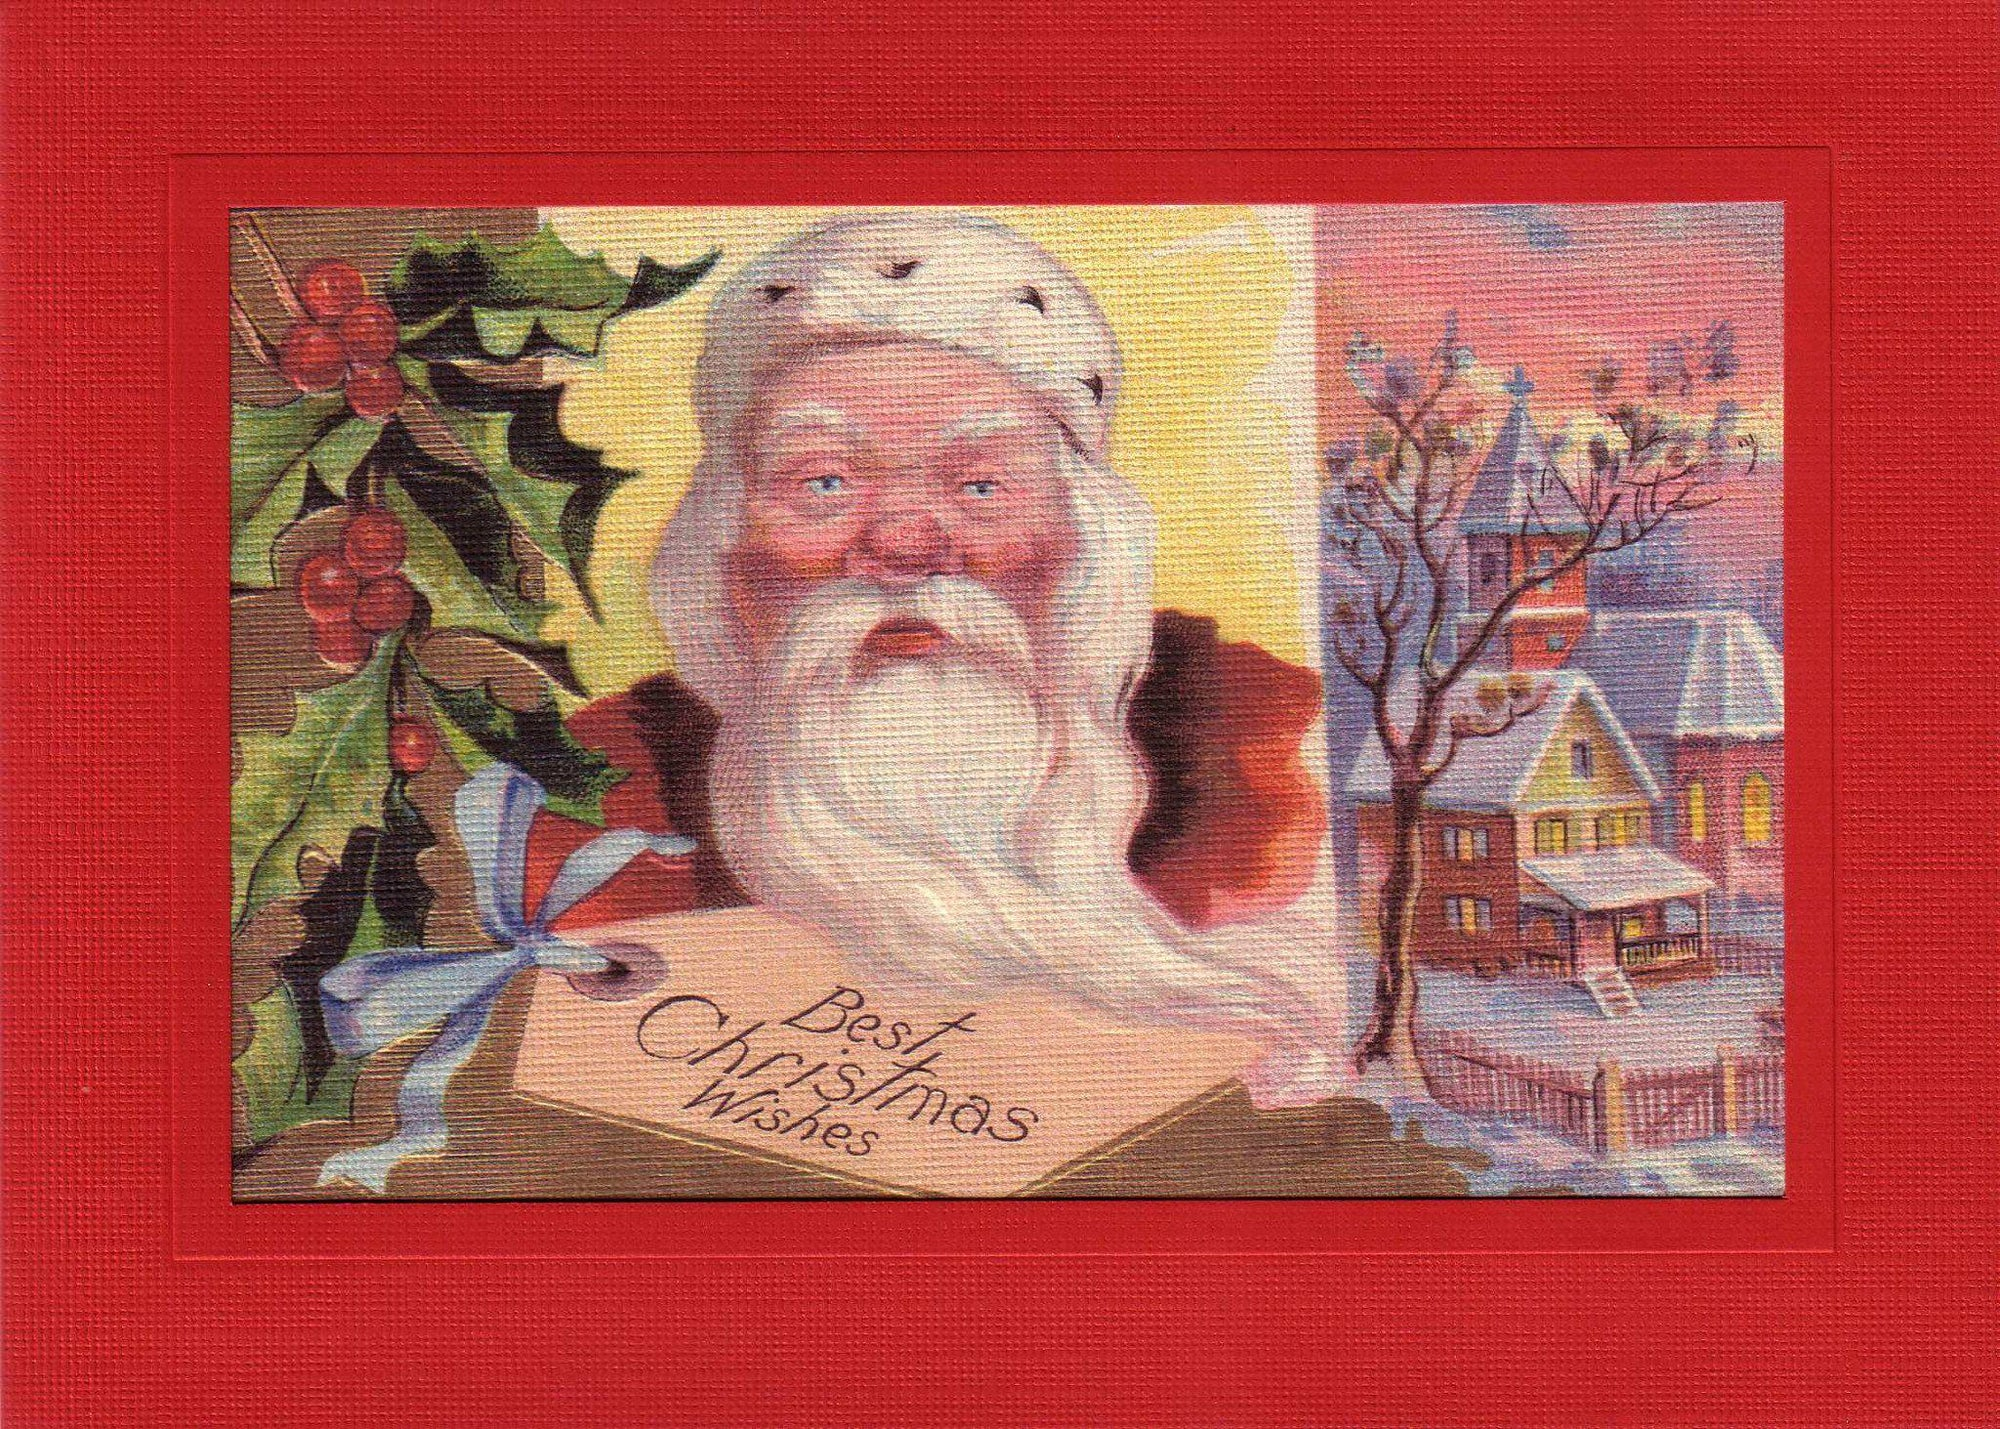 Best Christmas Wishes-Greetings from the Past-Plymouth Cards